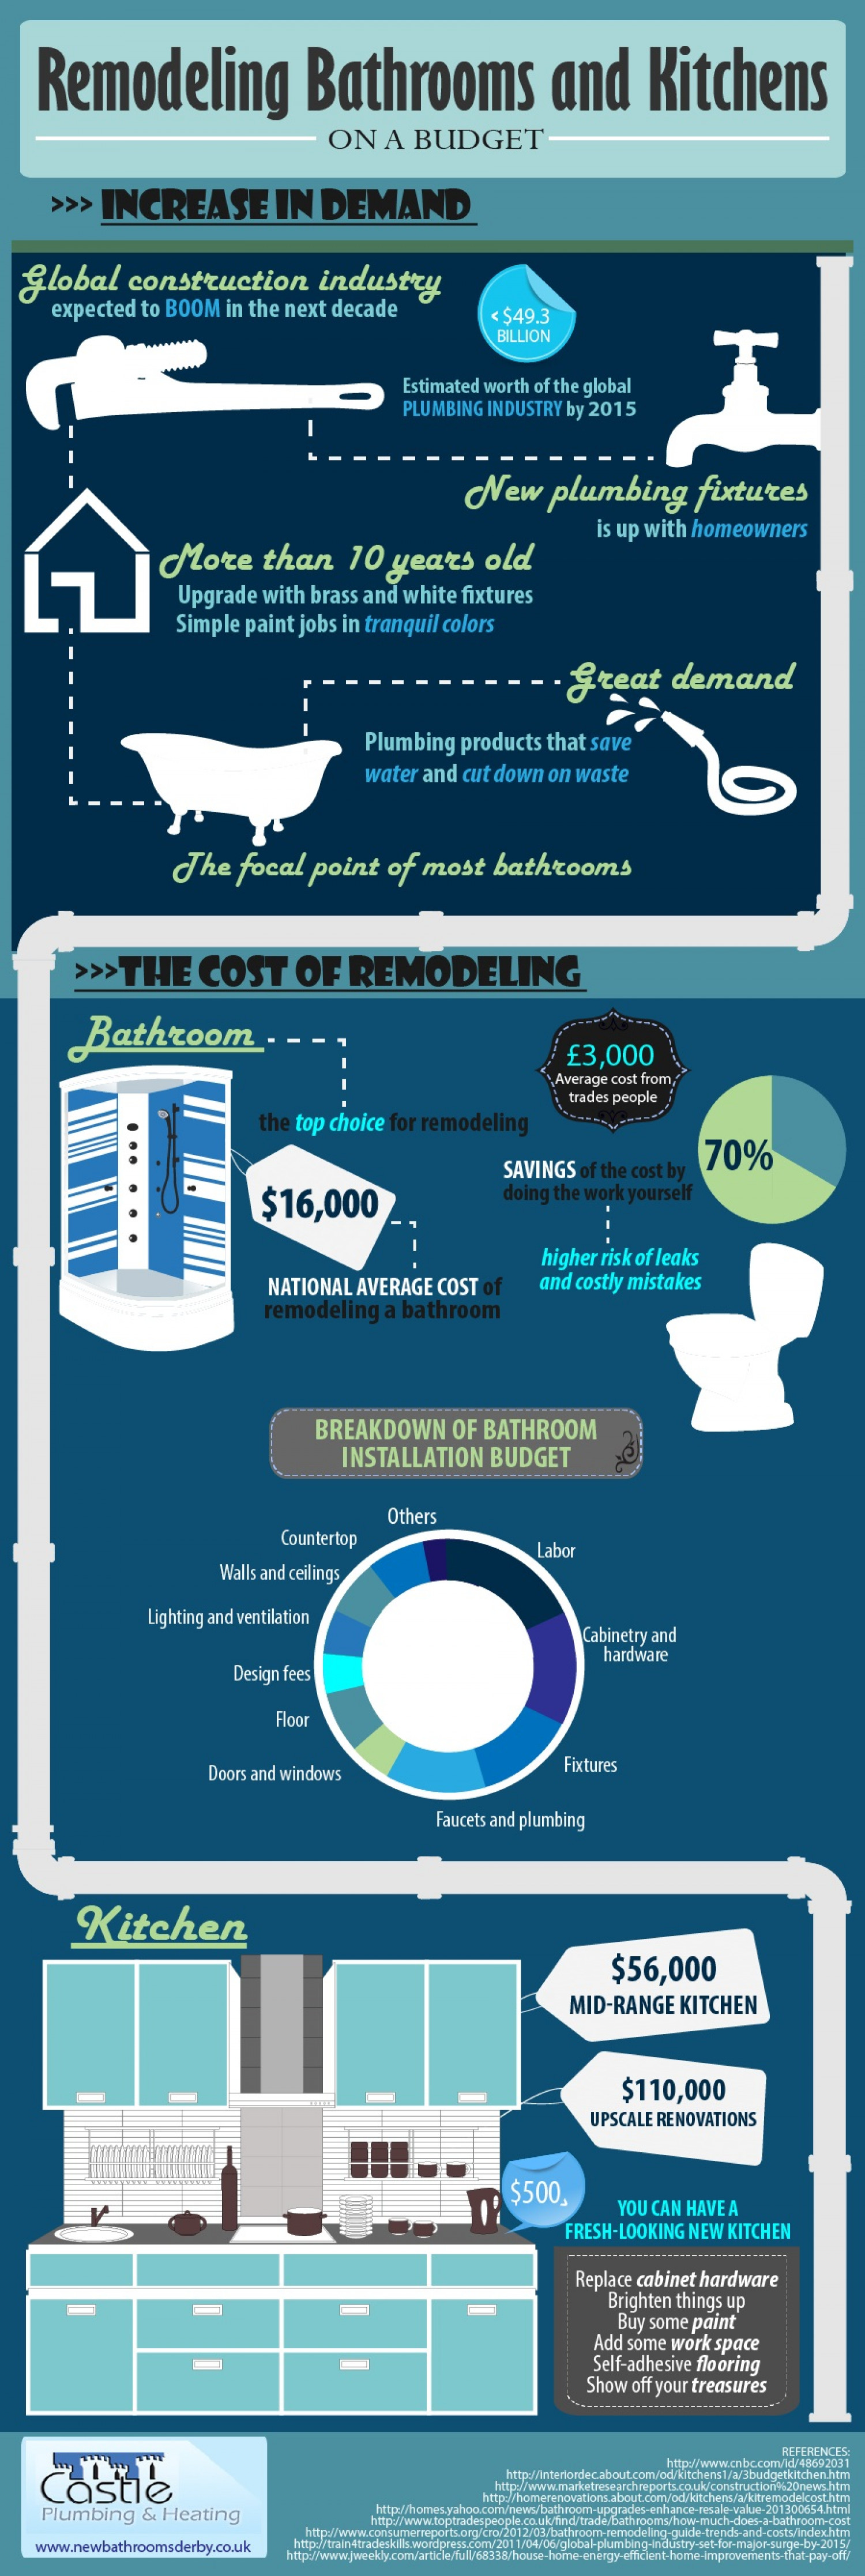 Remodeling Bathrooms and Kitchens on a Budget Infographic